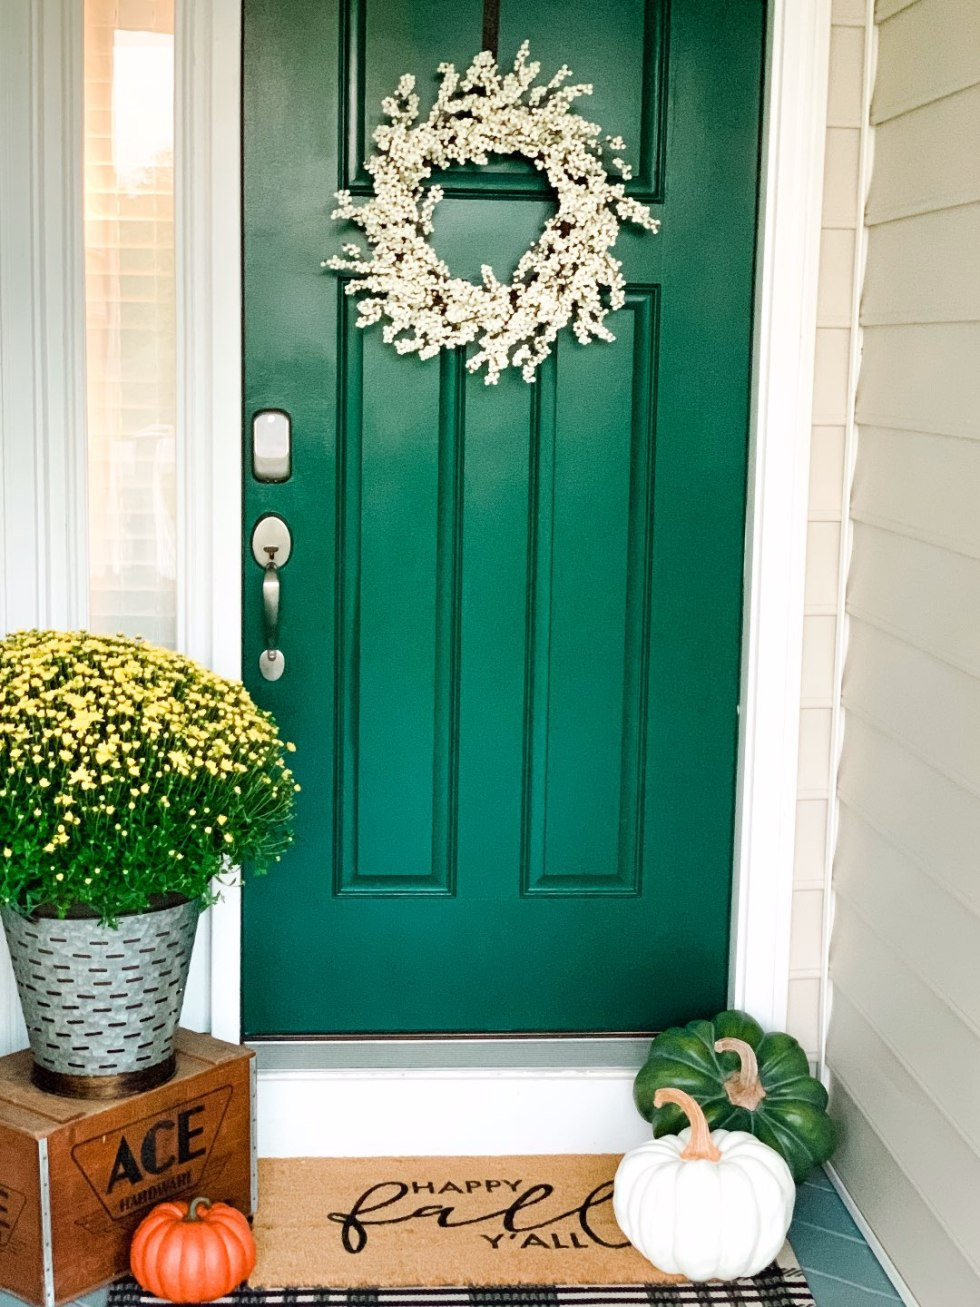 Our Fall Home Decor & Foyer Reveal - I'm Fixin' To - @mbg0112 | Cozy Fall Decor Ideas for your Home & Foyer by popular North Carolina life and style blog, I'm Fixin' To: image of a front porch decorated with various Fall decor.